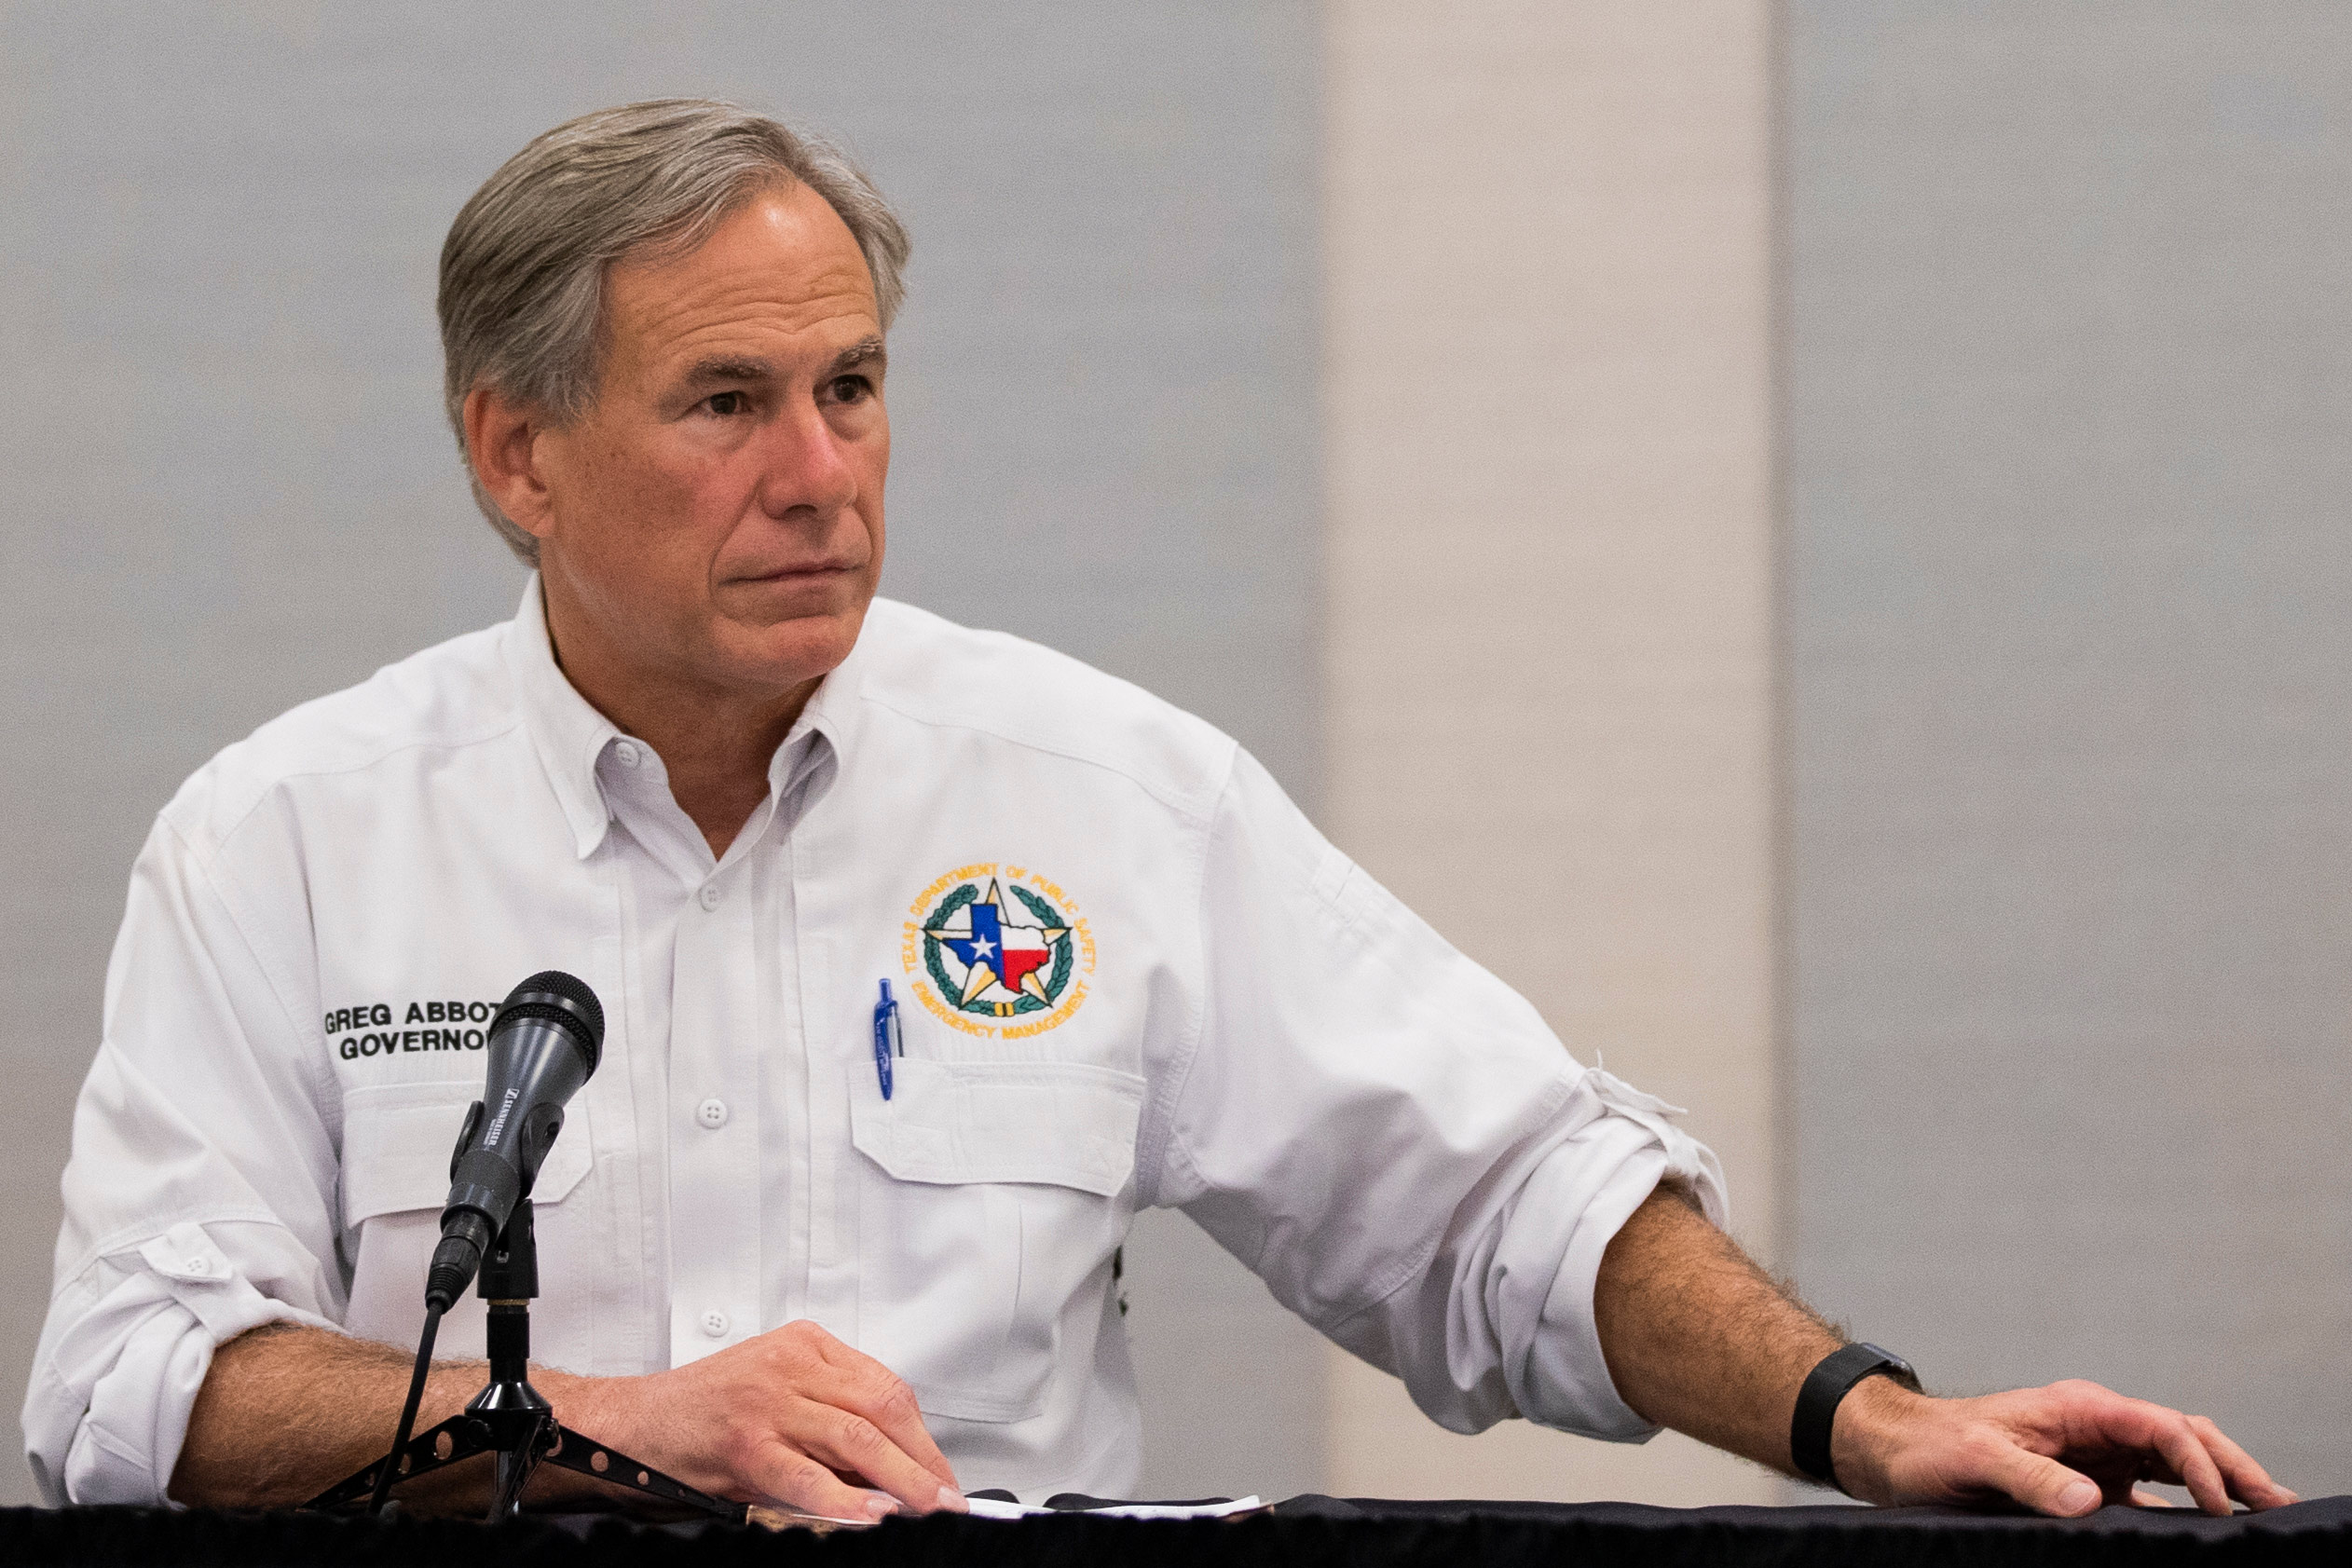 Texas Gov. Greg Abbott visits Lake Jackson, Texas on September 29.